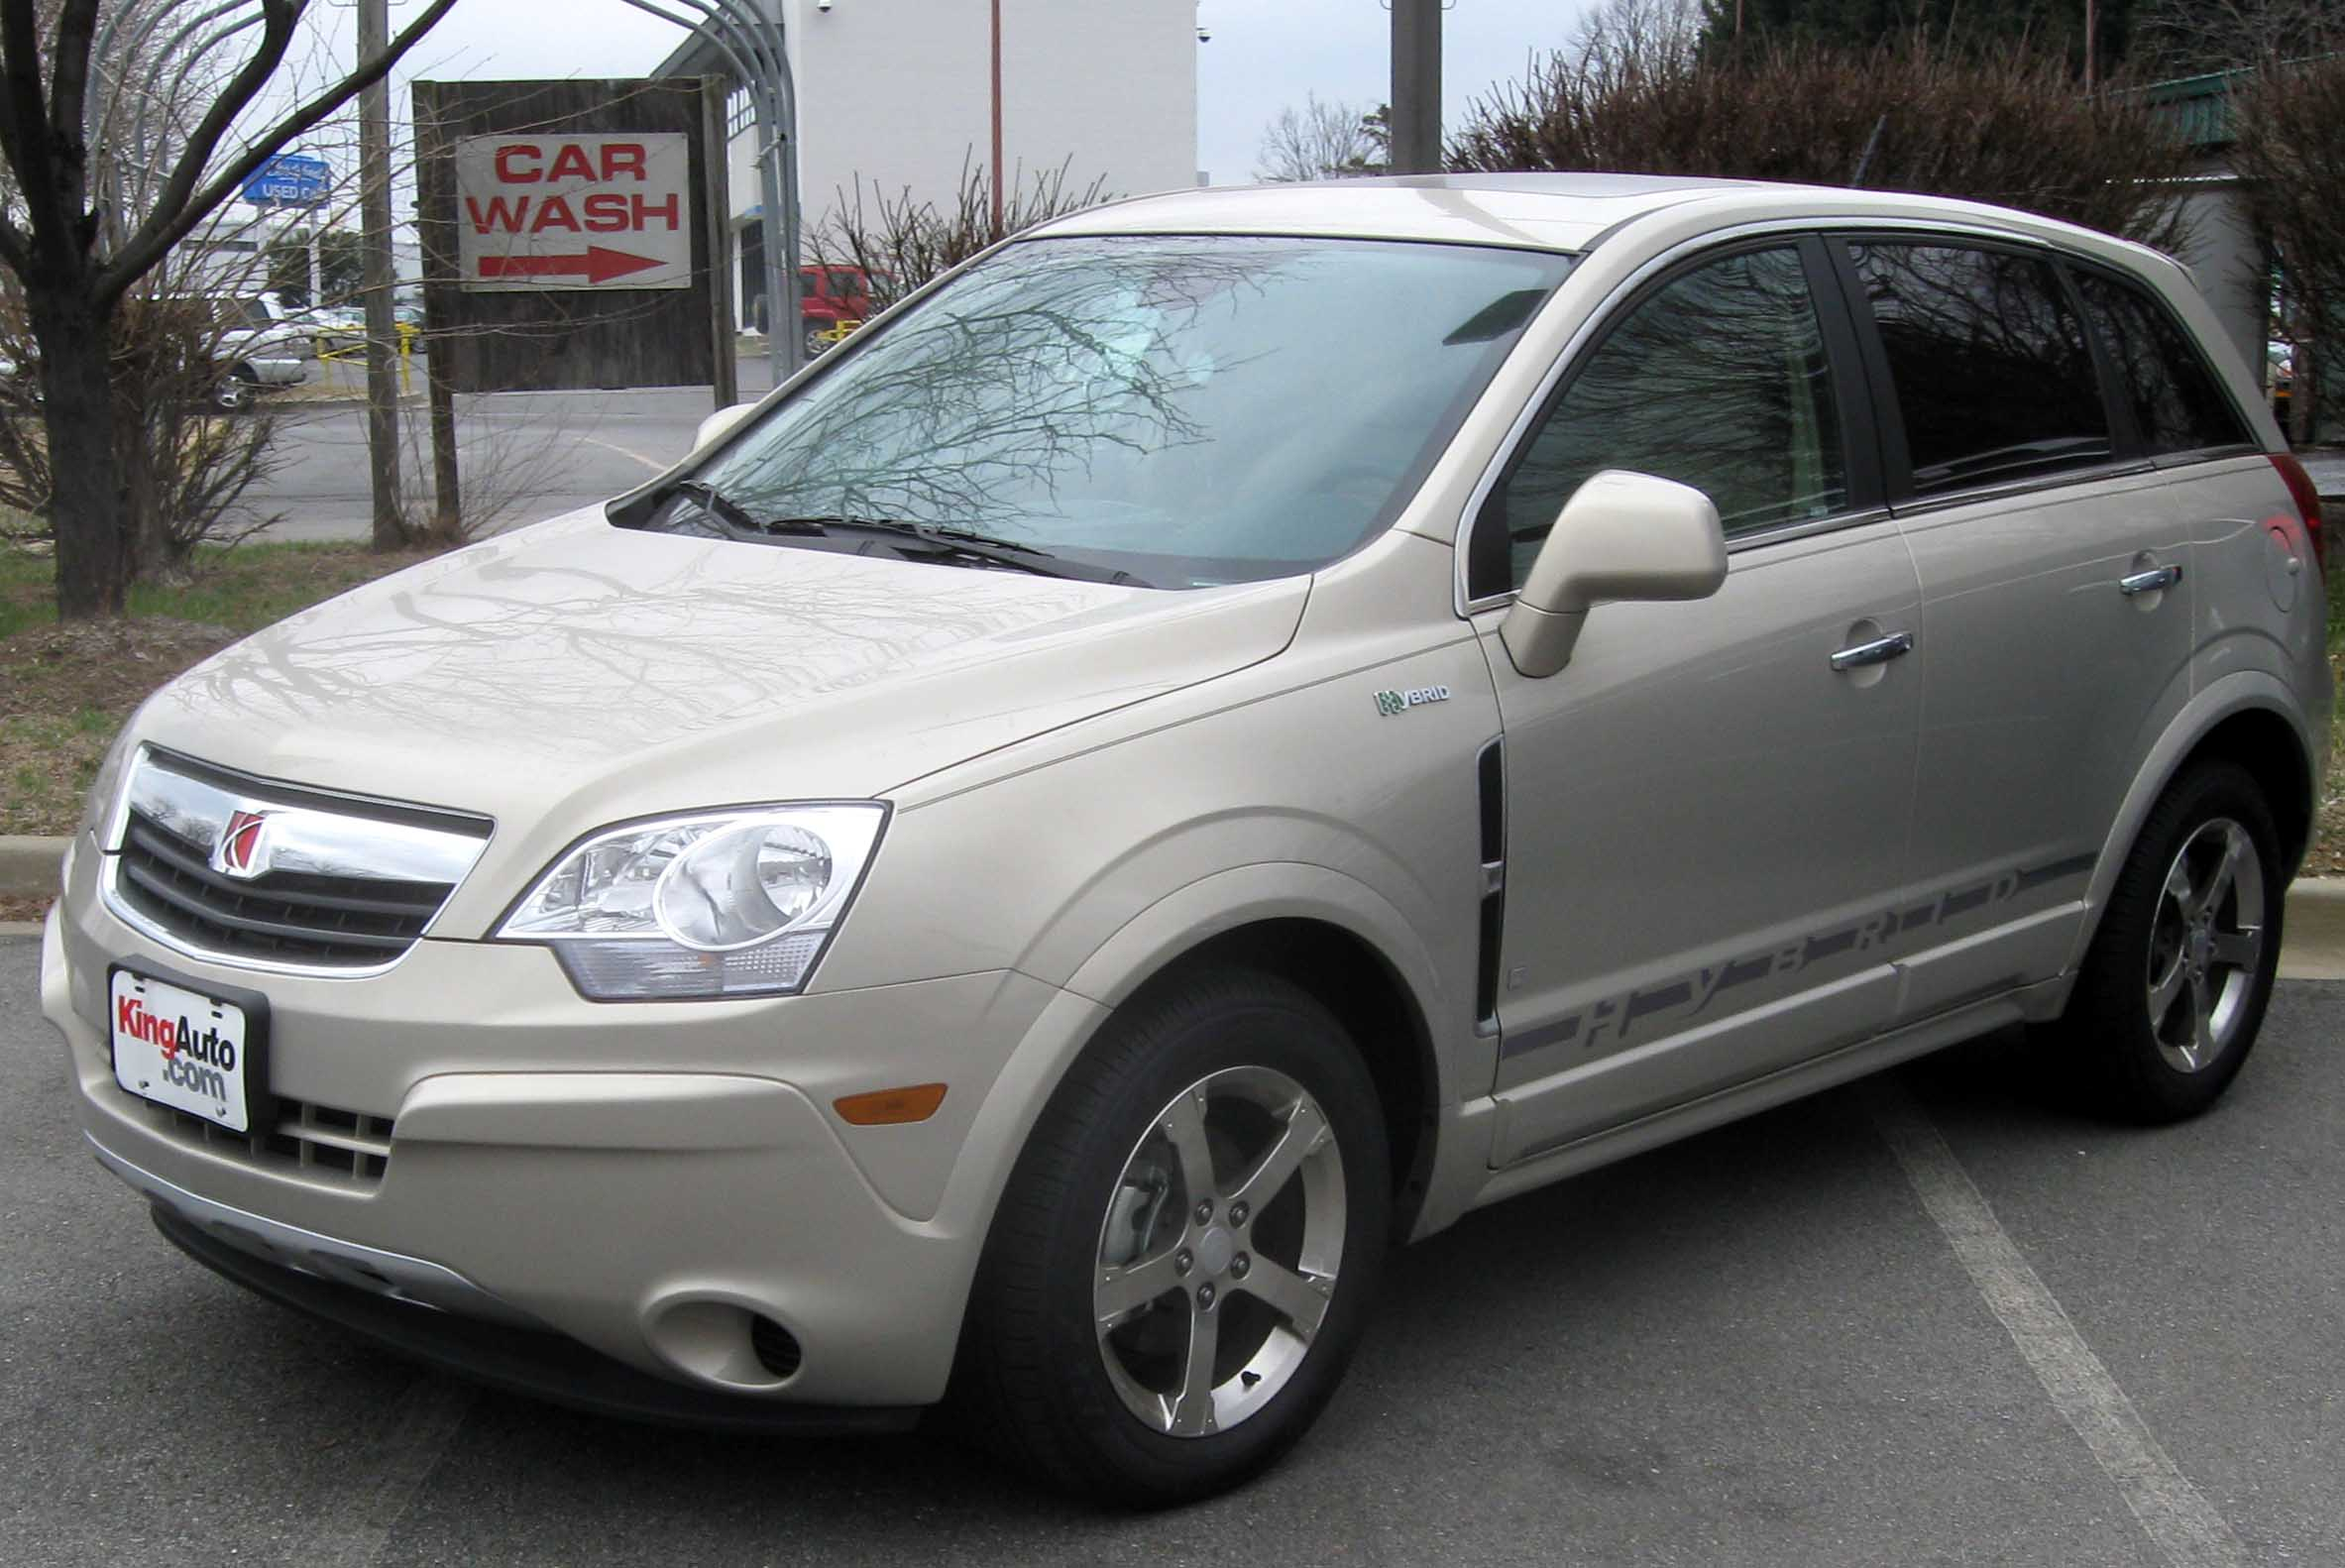 File:2009 Saturn Vue Hybrid